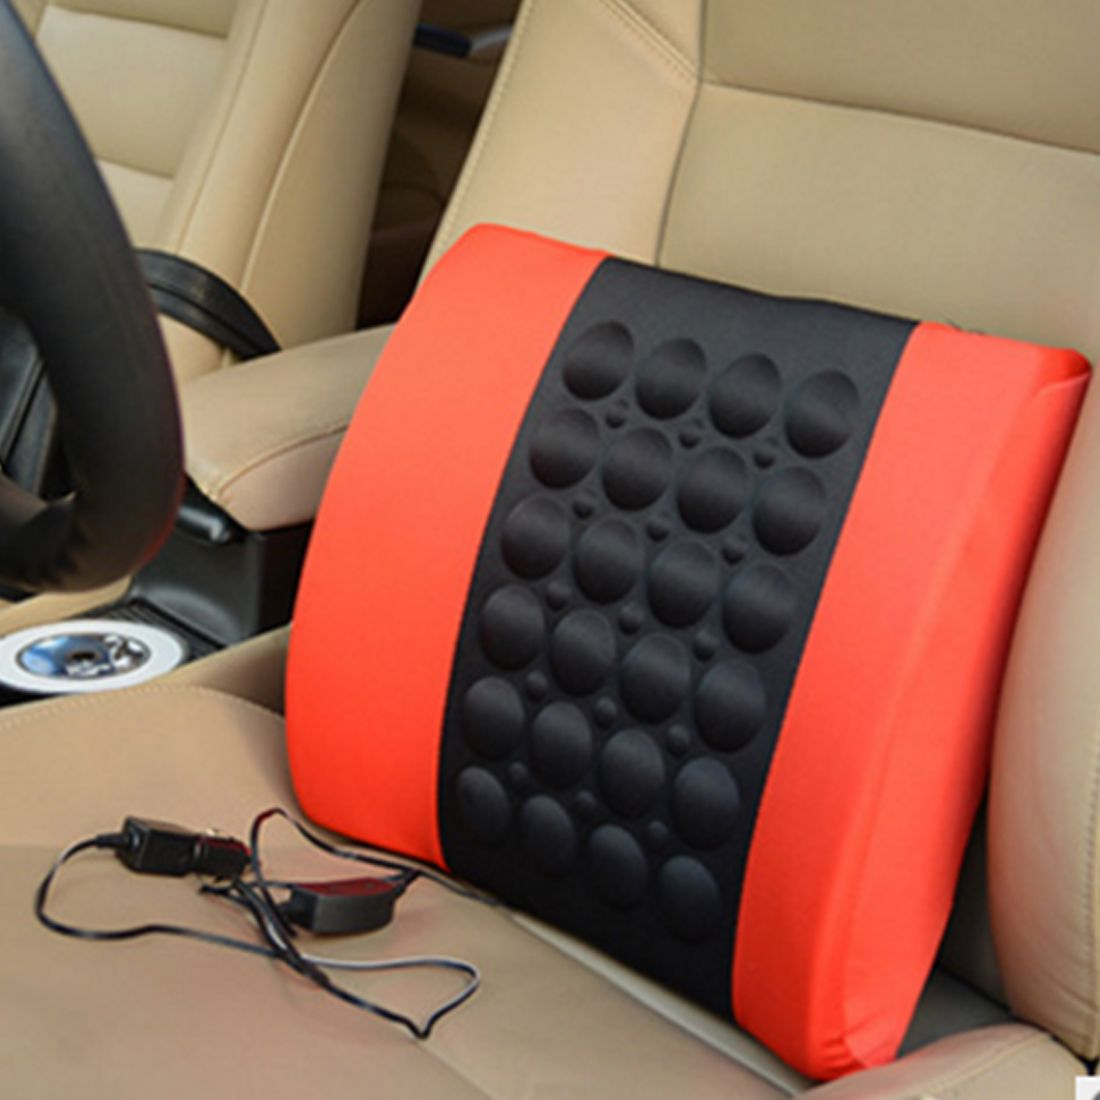 Dewtreetali Top Multifunctional Electrical Car Massage Lumbar Support Cushion Vehicle Back Seat Relaxation Waist Support